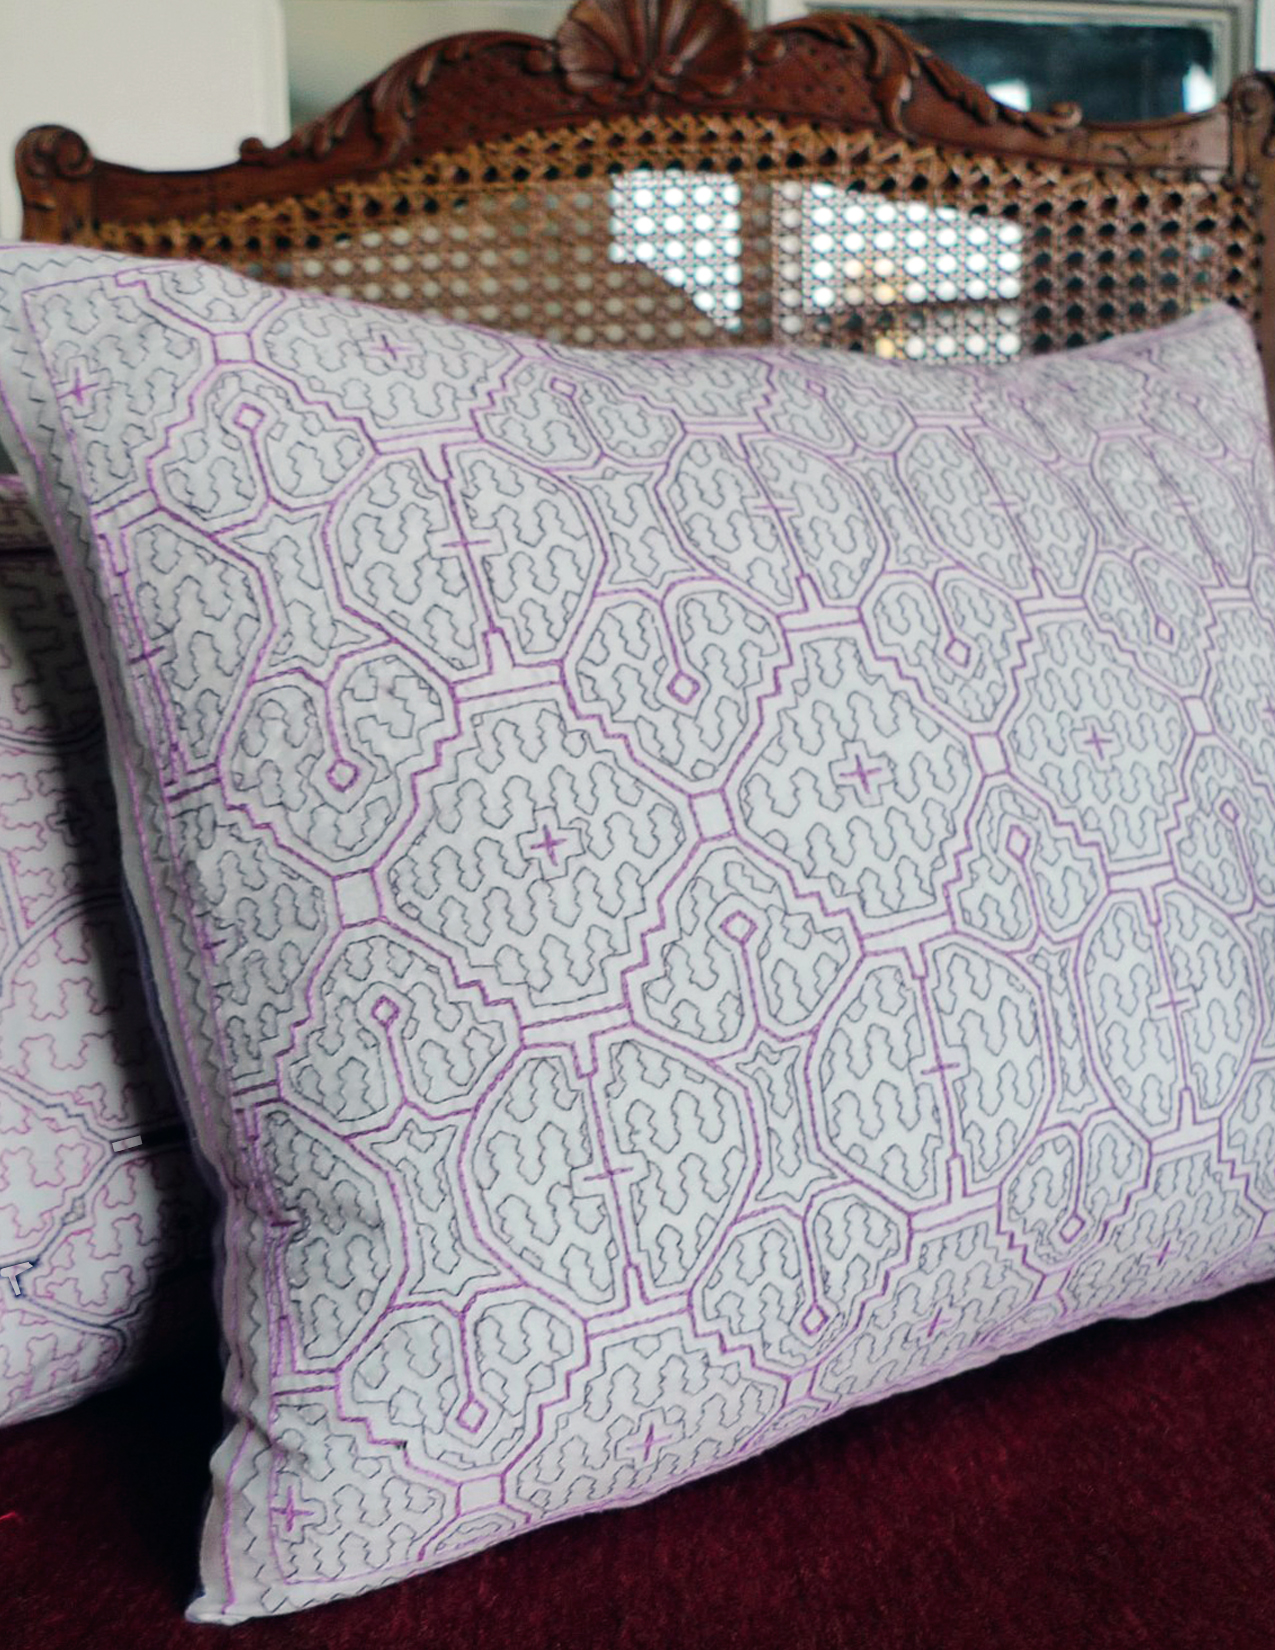 embroidered pillows_no text.jpg